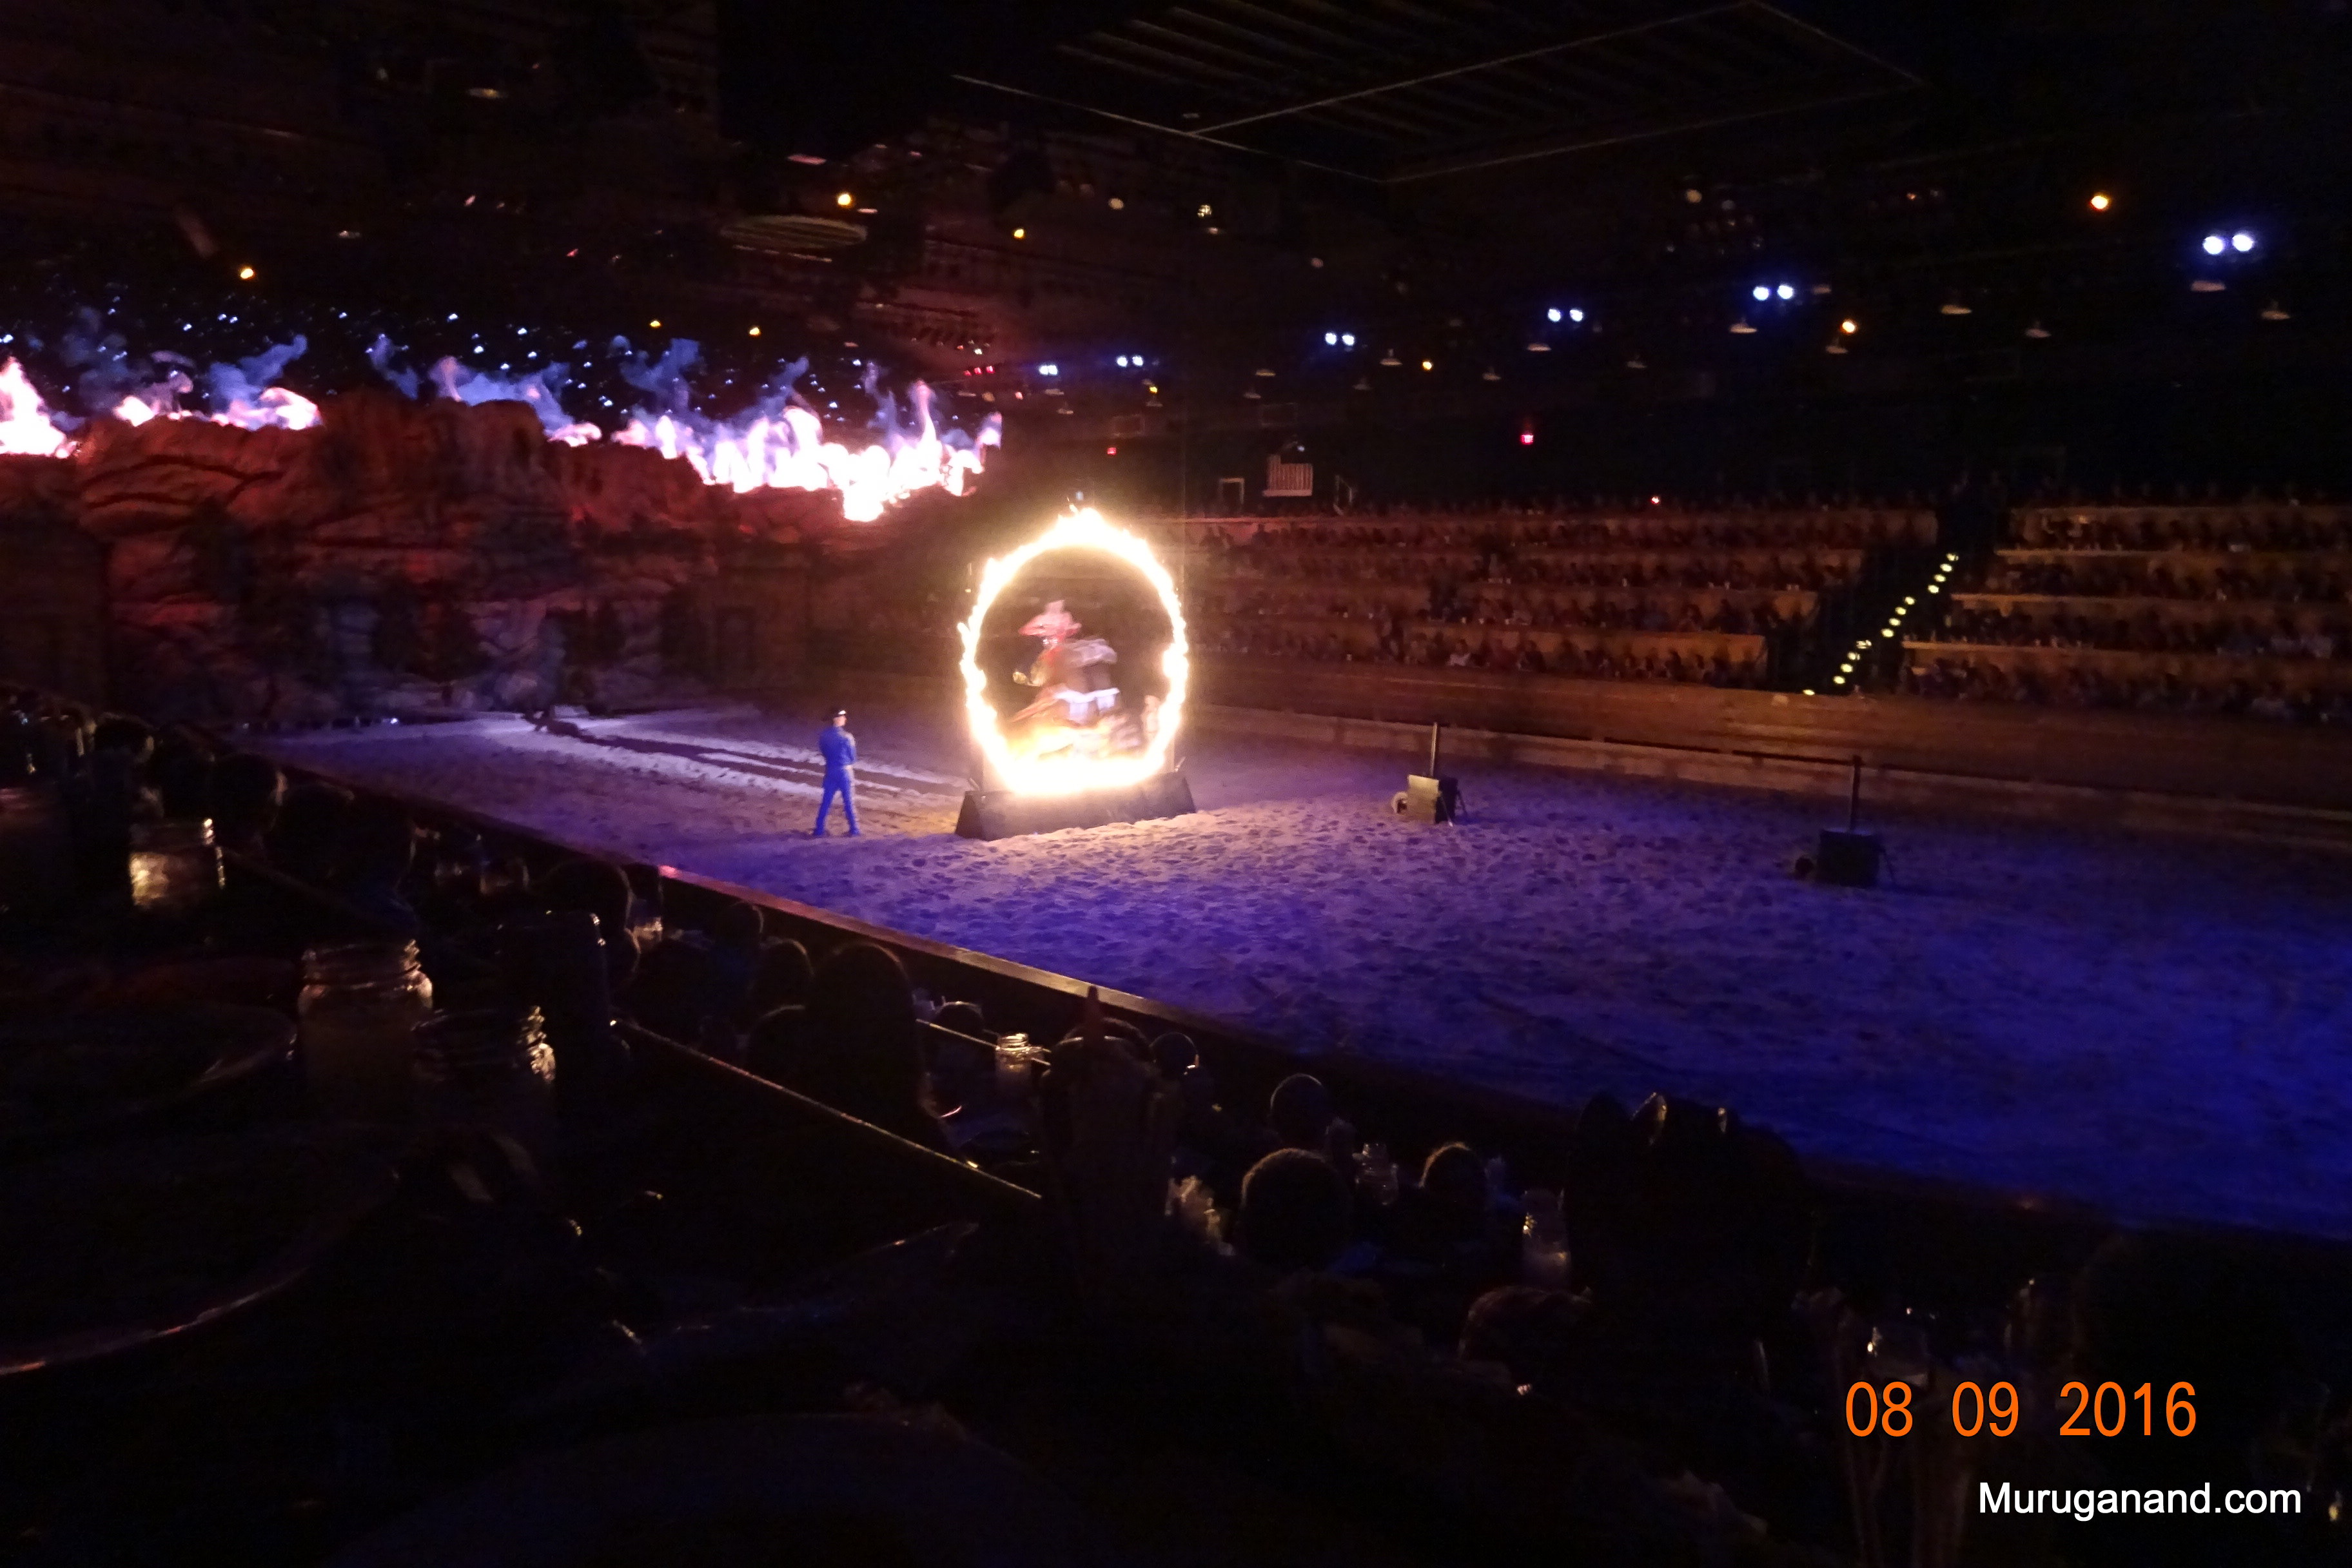 She steers the horse into the ring of fire to the delight of the audience.